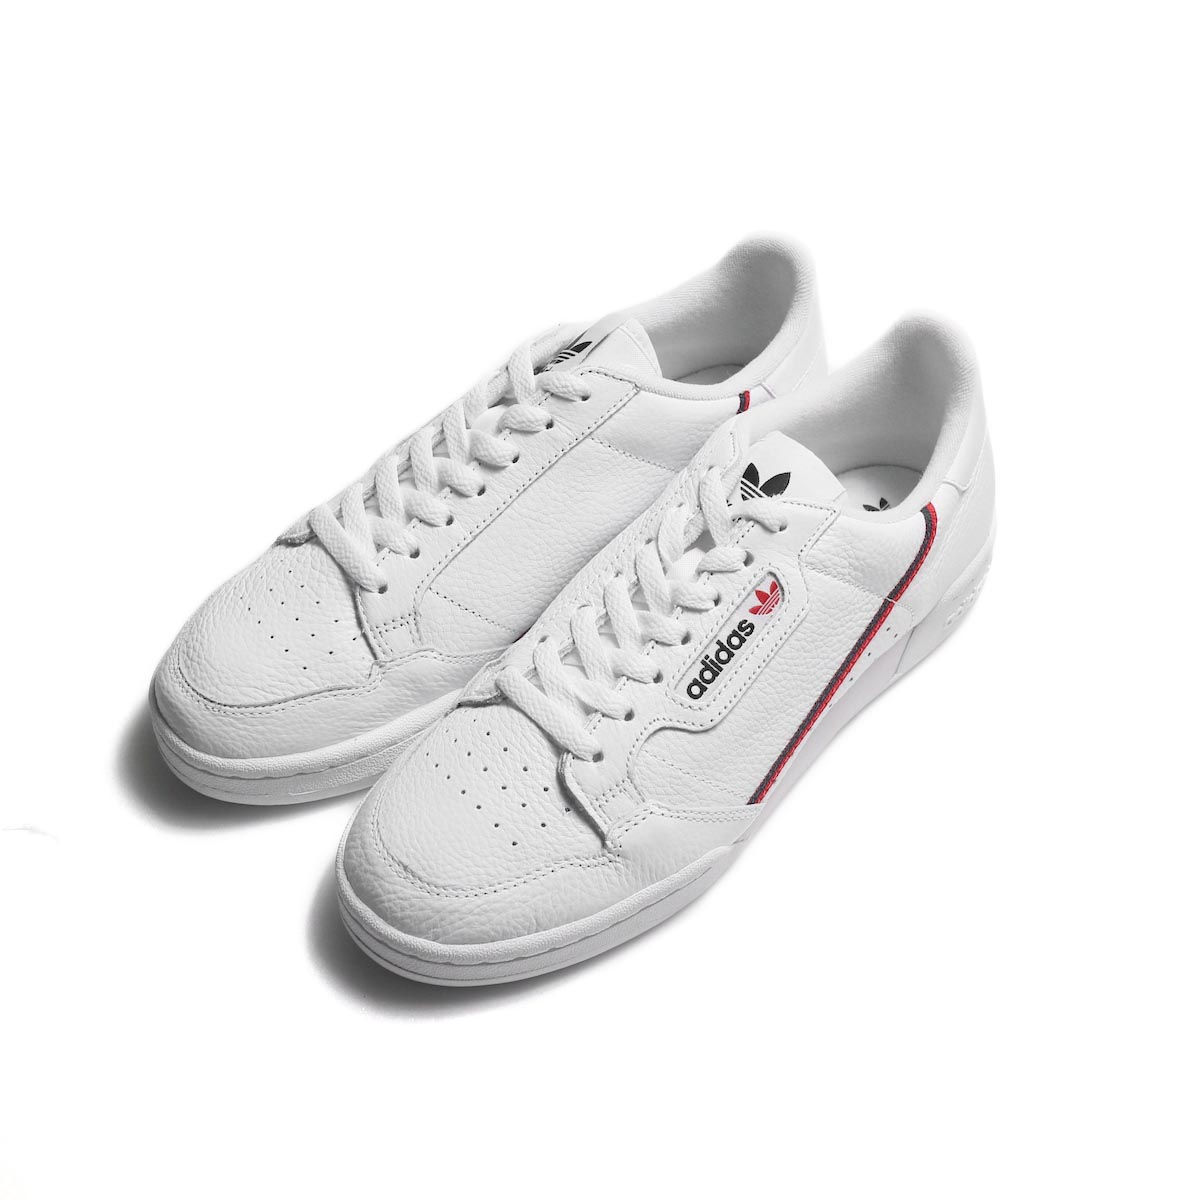 adidas originals / CONTINENTAL80 (G27706) -White 前サイド